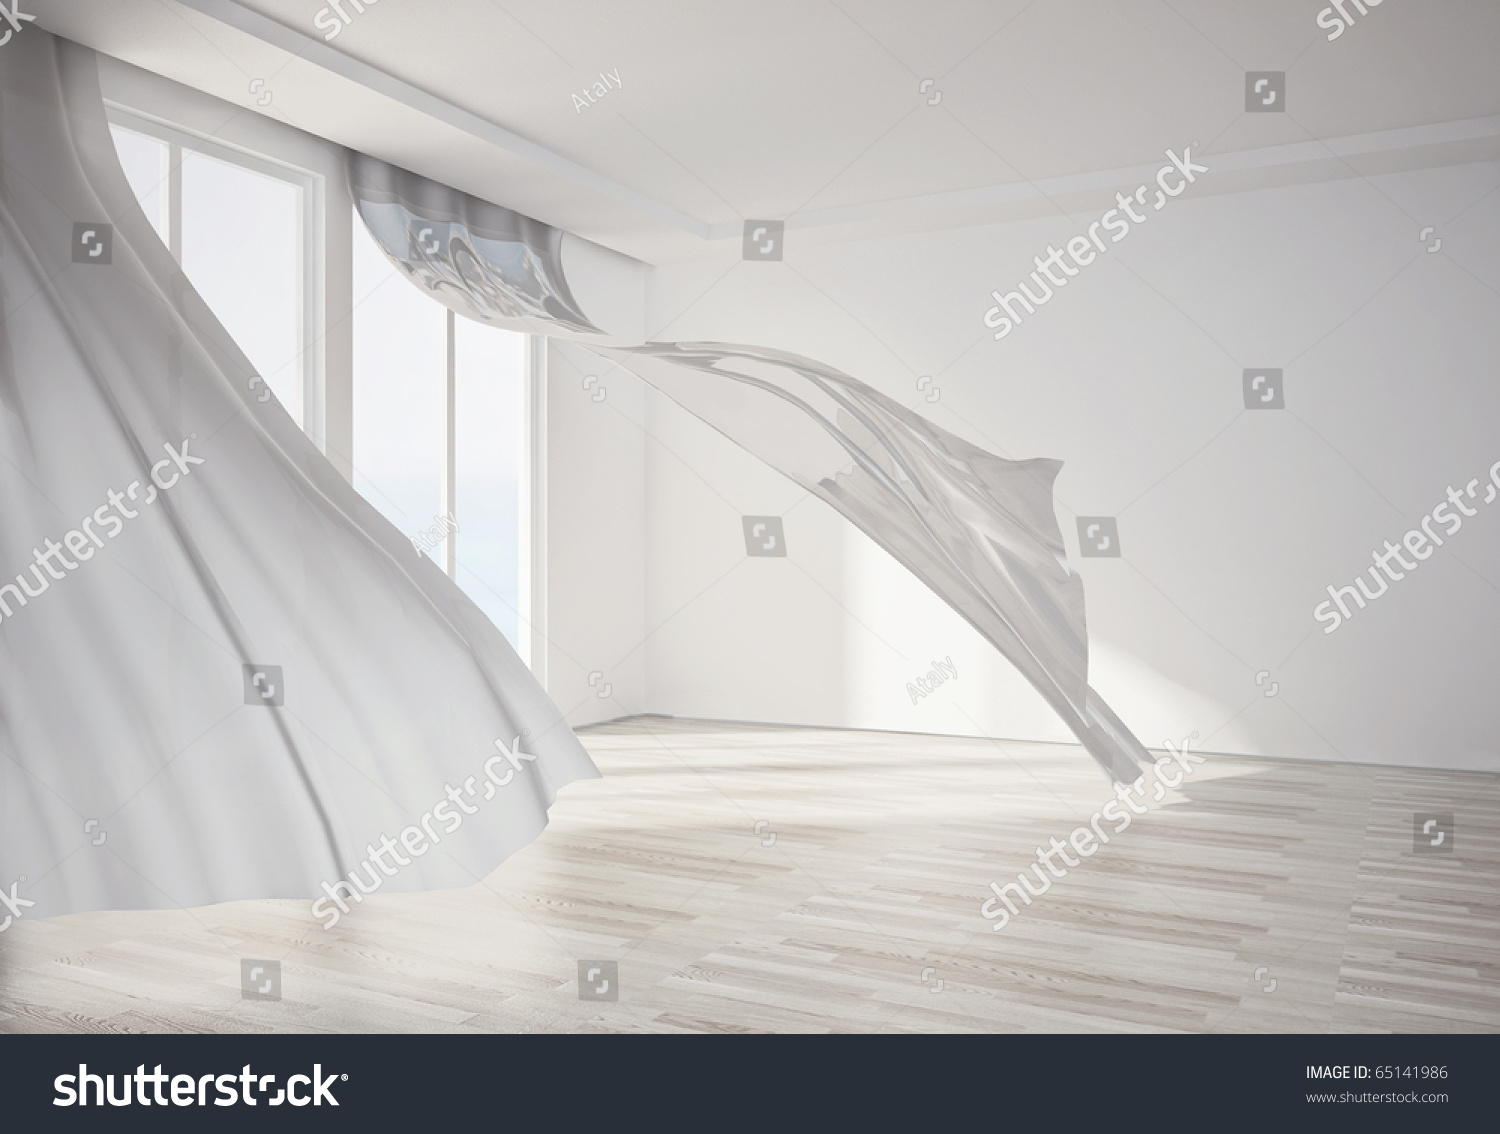 White Flowing Curtains Interior Room White Flowing Curtains 3D Stock Illustration